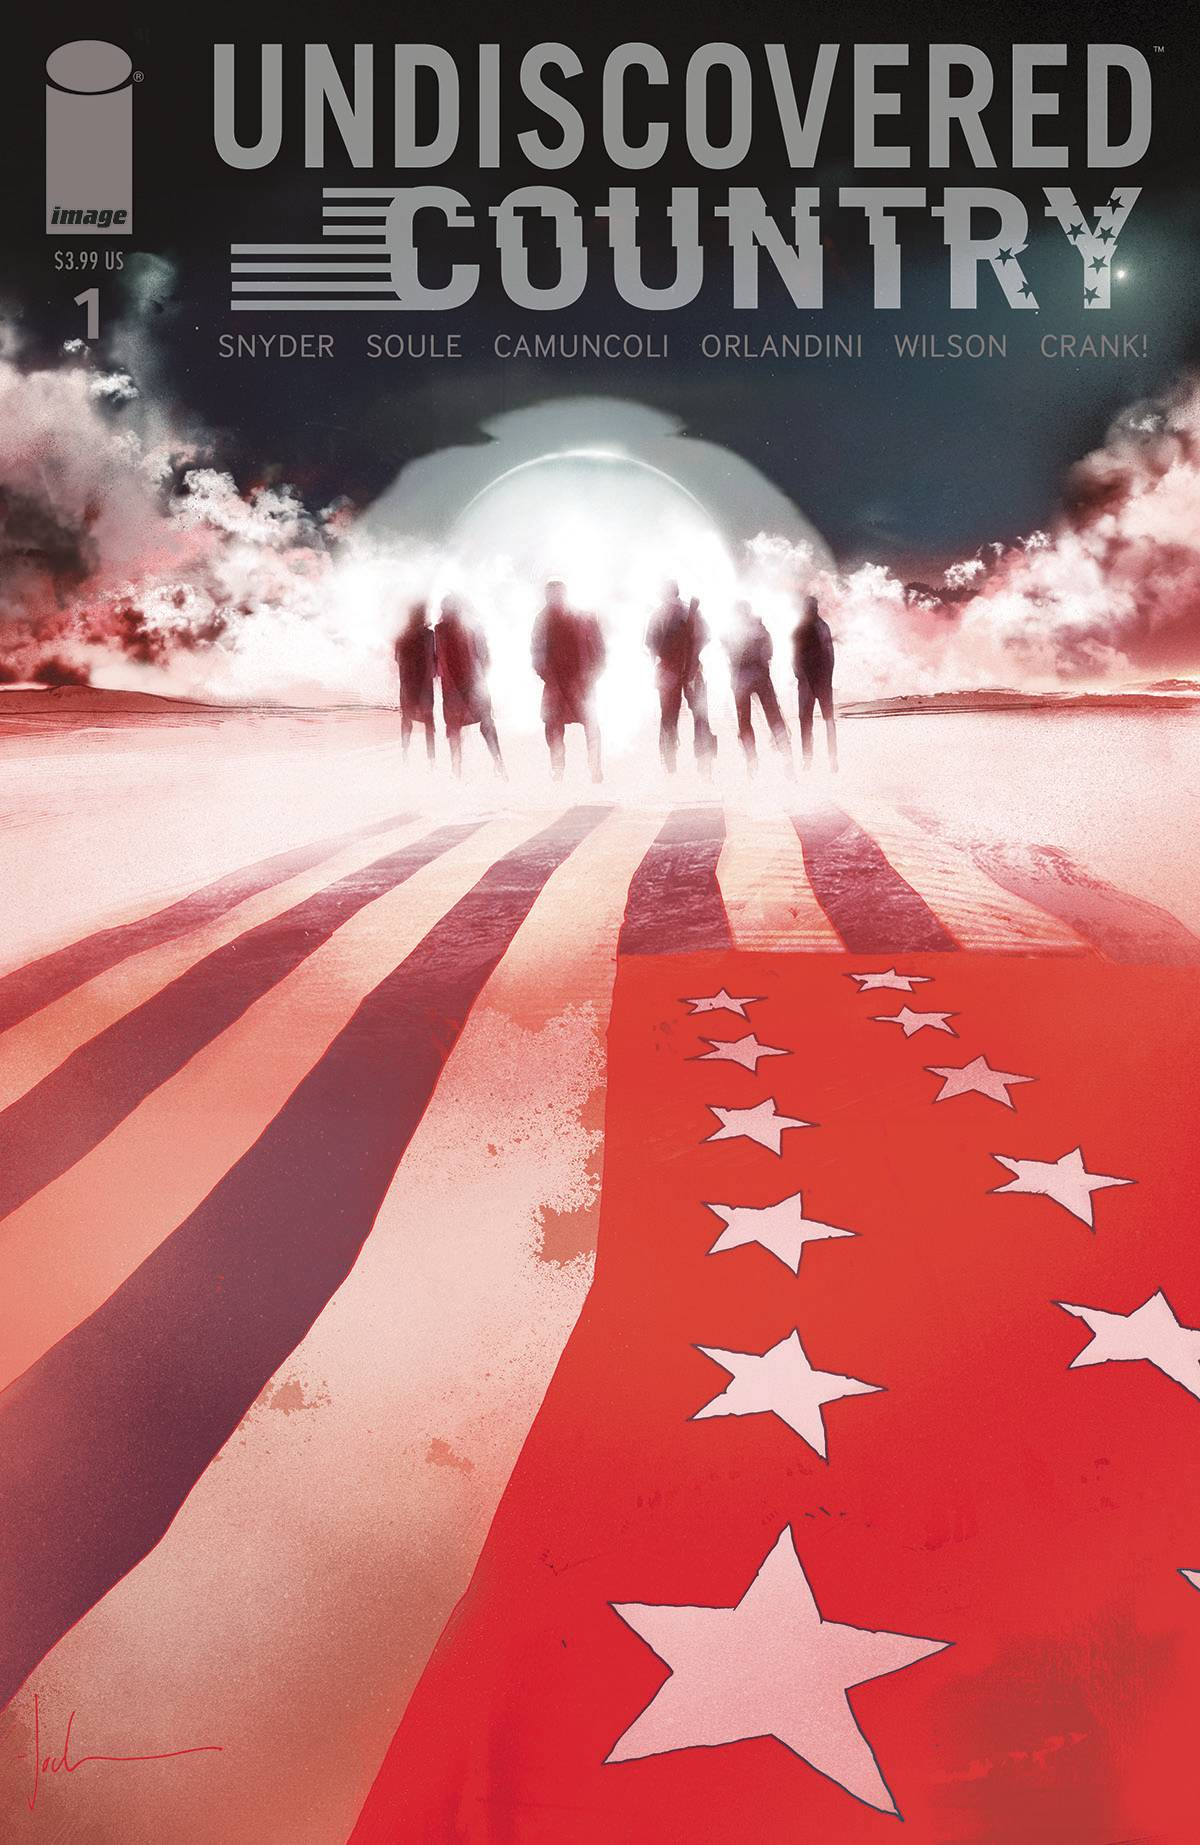 Undiscovered Country #1 from Scott Snyder, Charles Soule and Giuseppe Camuncoli Dominates Advance Reorders